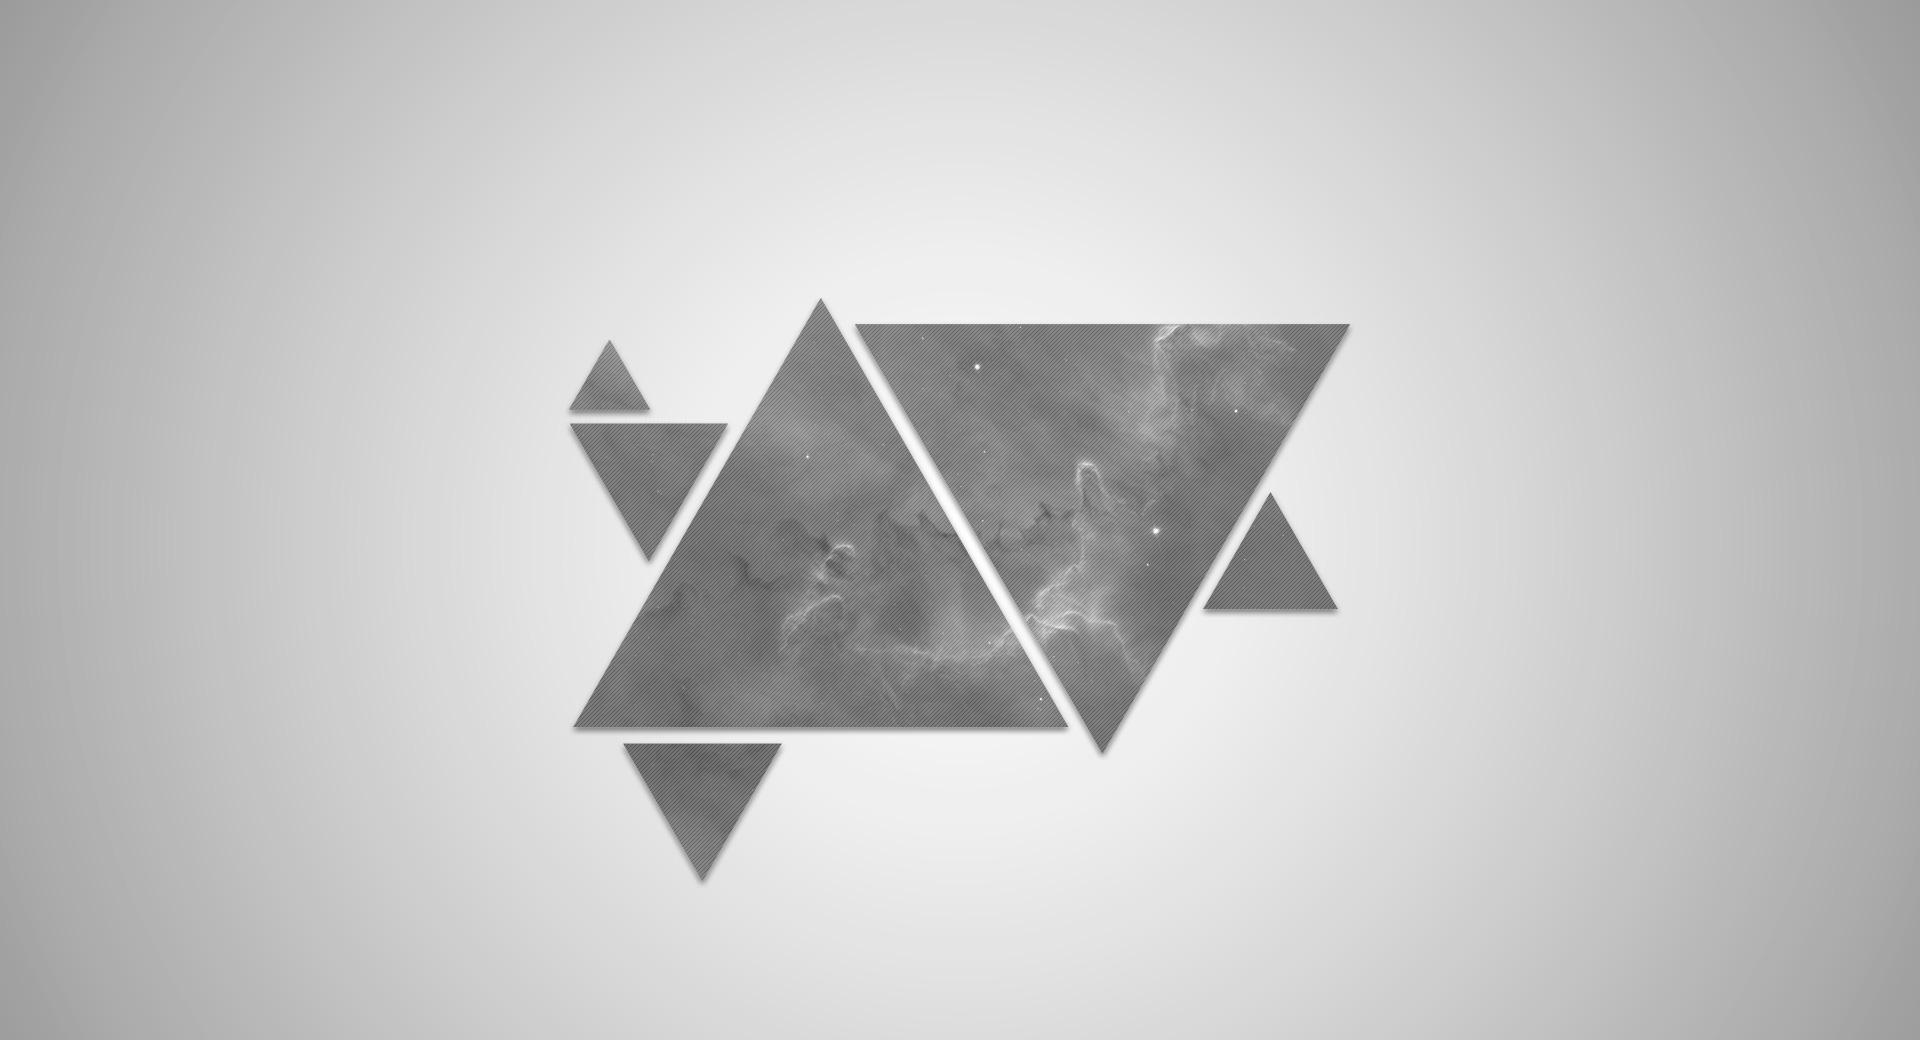 Space Triangles at 750 x 1334 iPhone 6 size wallpapers HD quality